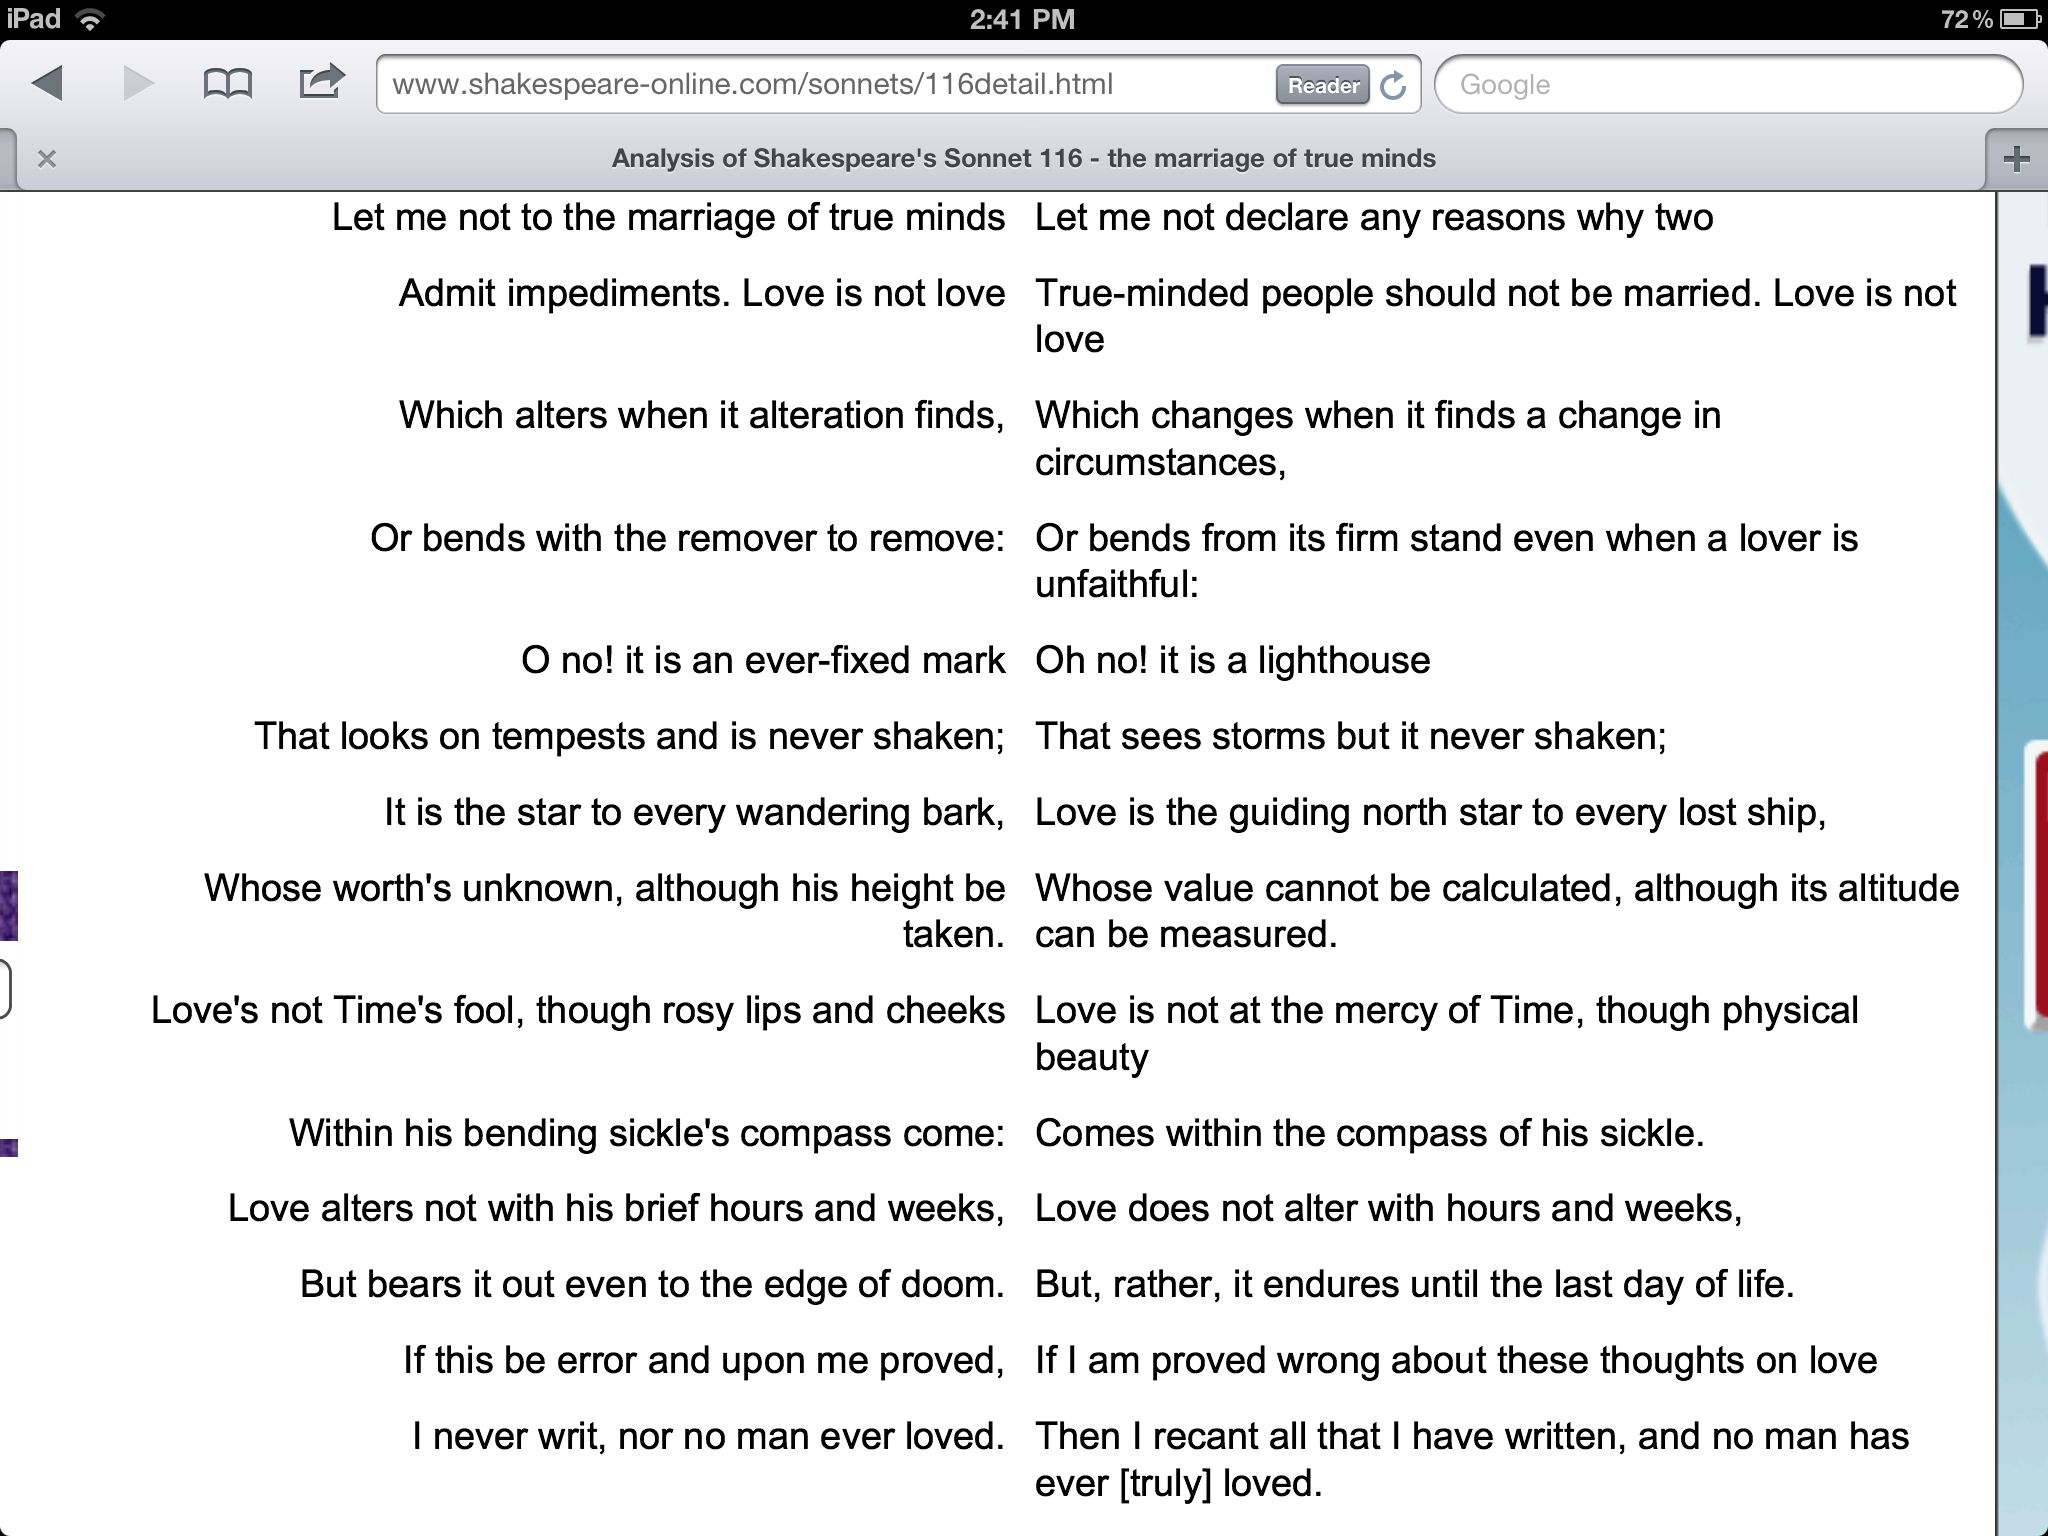 Sonnet 116 And Paraphrase 3 Http Www Shakespeare Online Com 116detail Html Sonnets How To